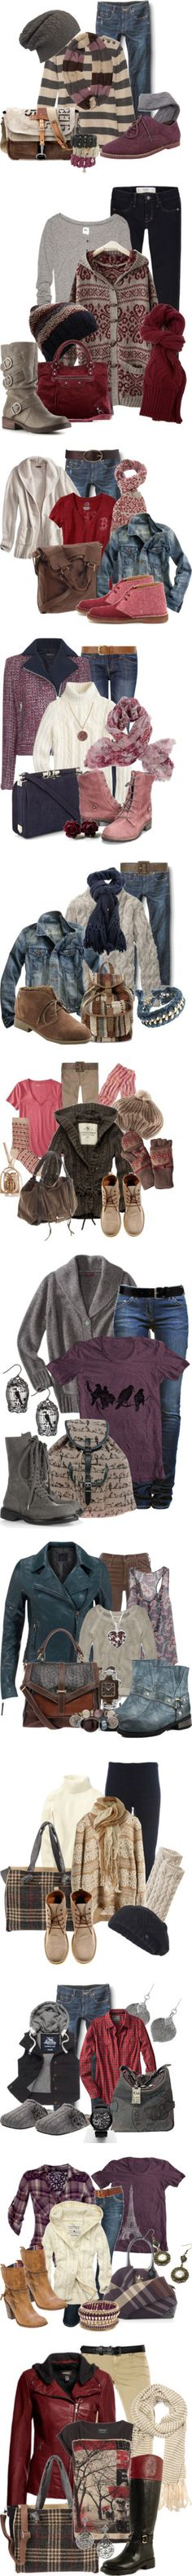 """Casual Comfort"" by stylesbyjoey on Polyvore"